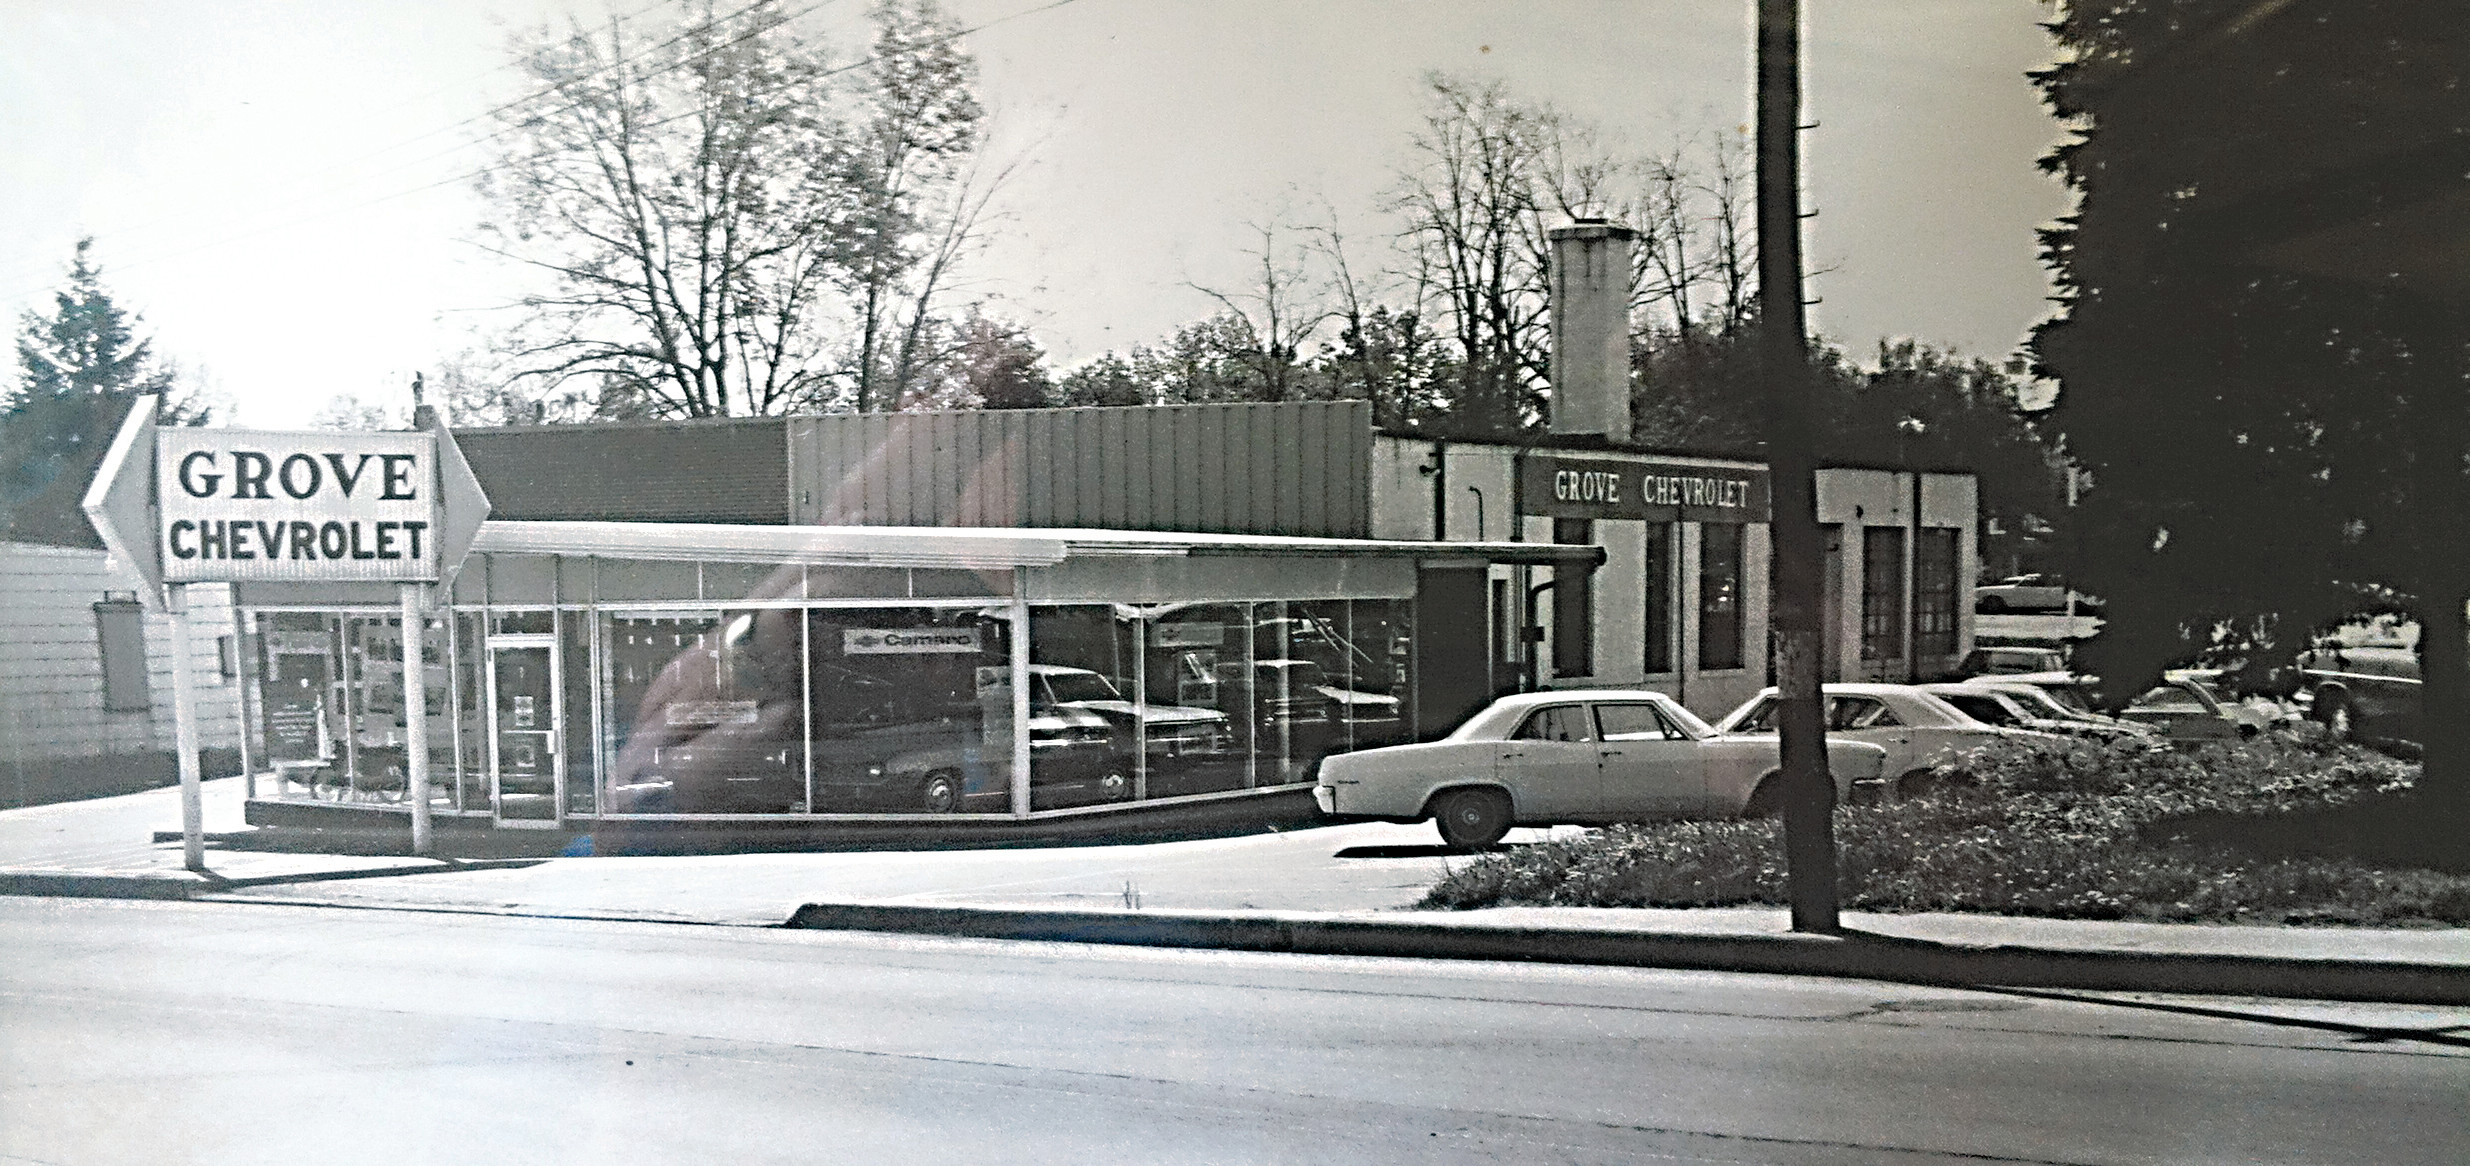 The Grove Chevrolet dealership is seen in this 1969 photo. A 1969 Camaro is visible in the front of the showroom.